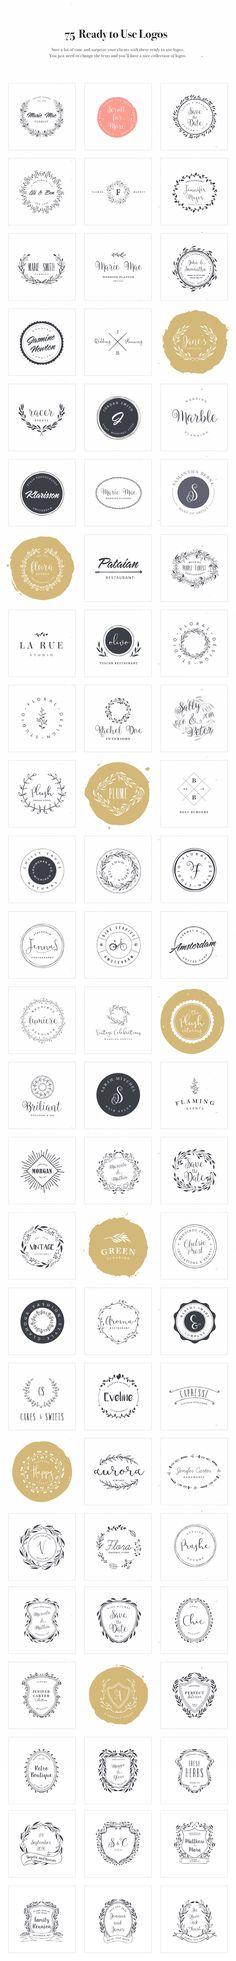 Logo Design Kit by V